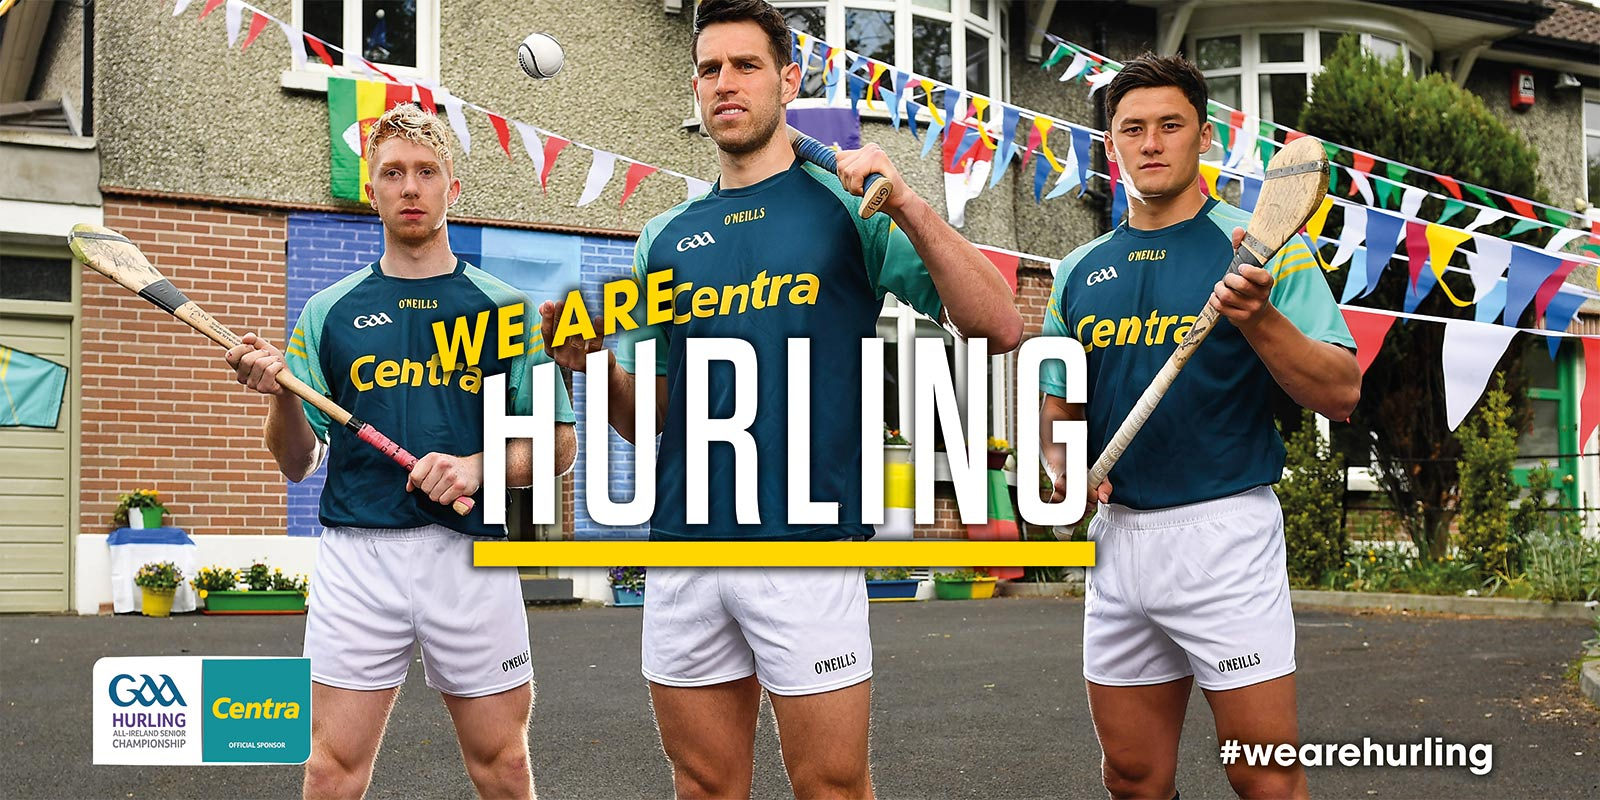 #WeAreHurling